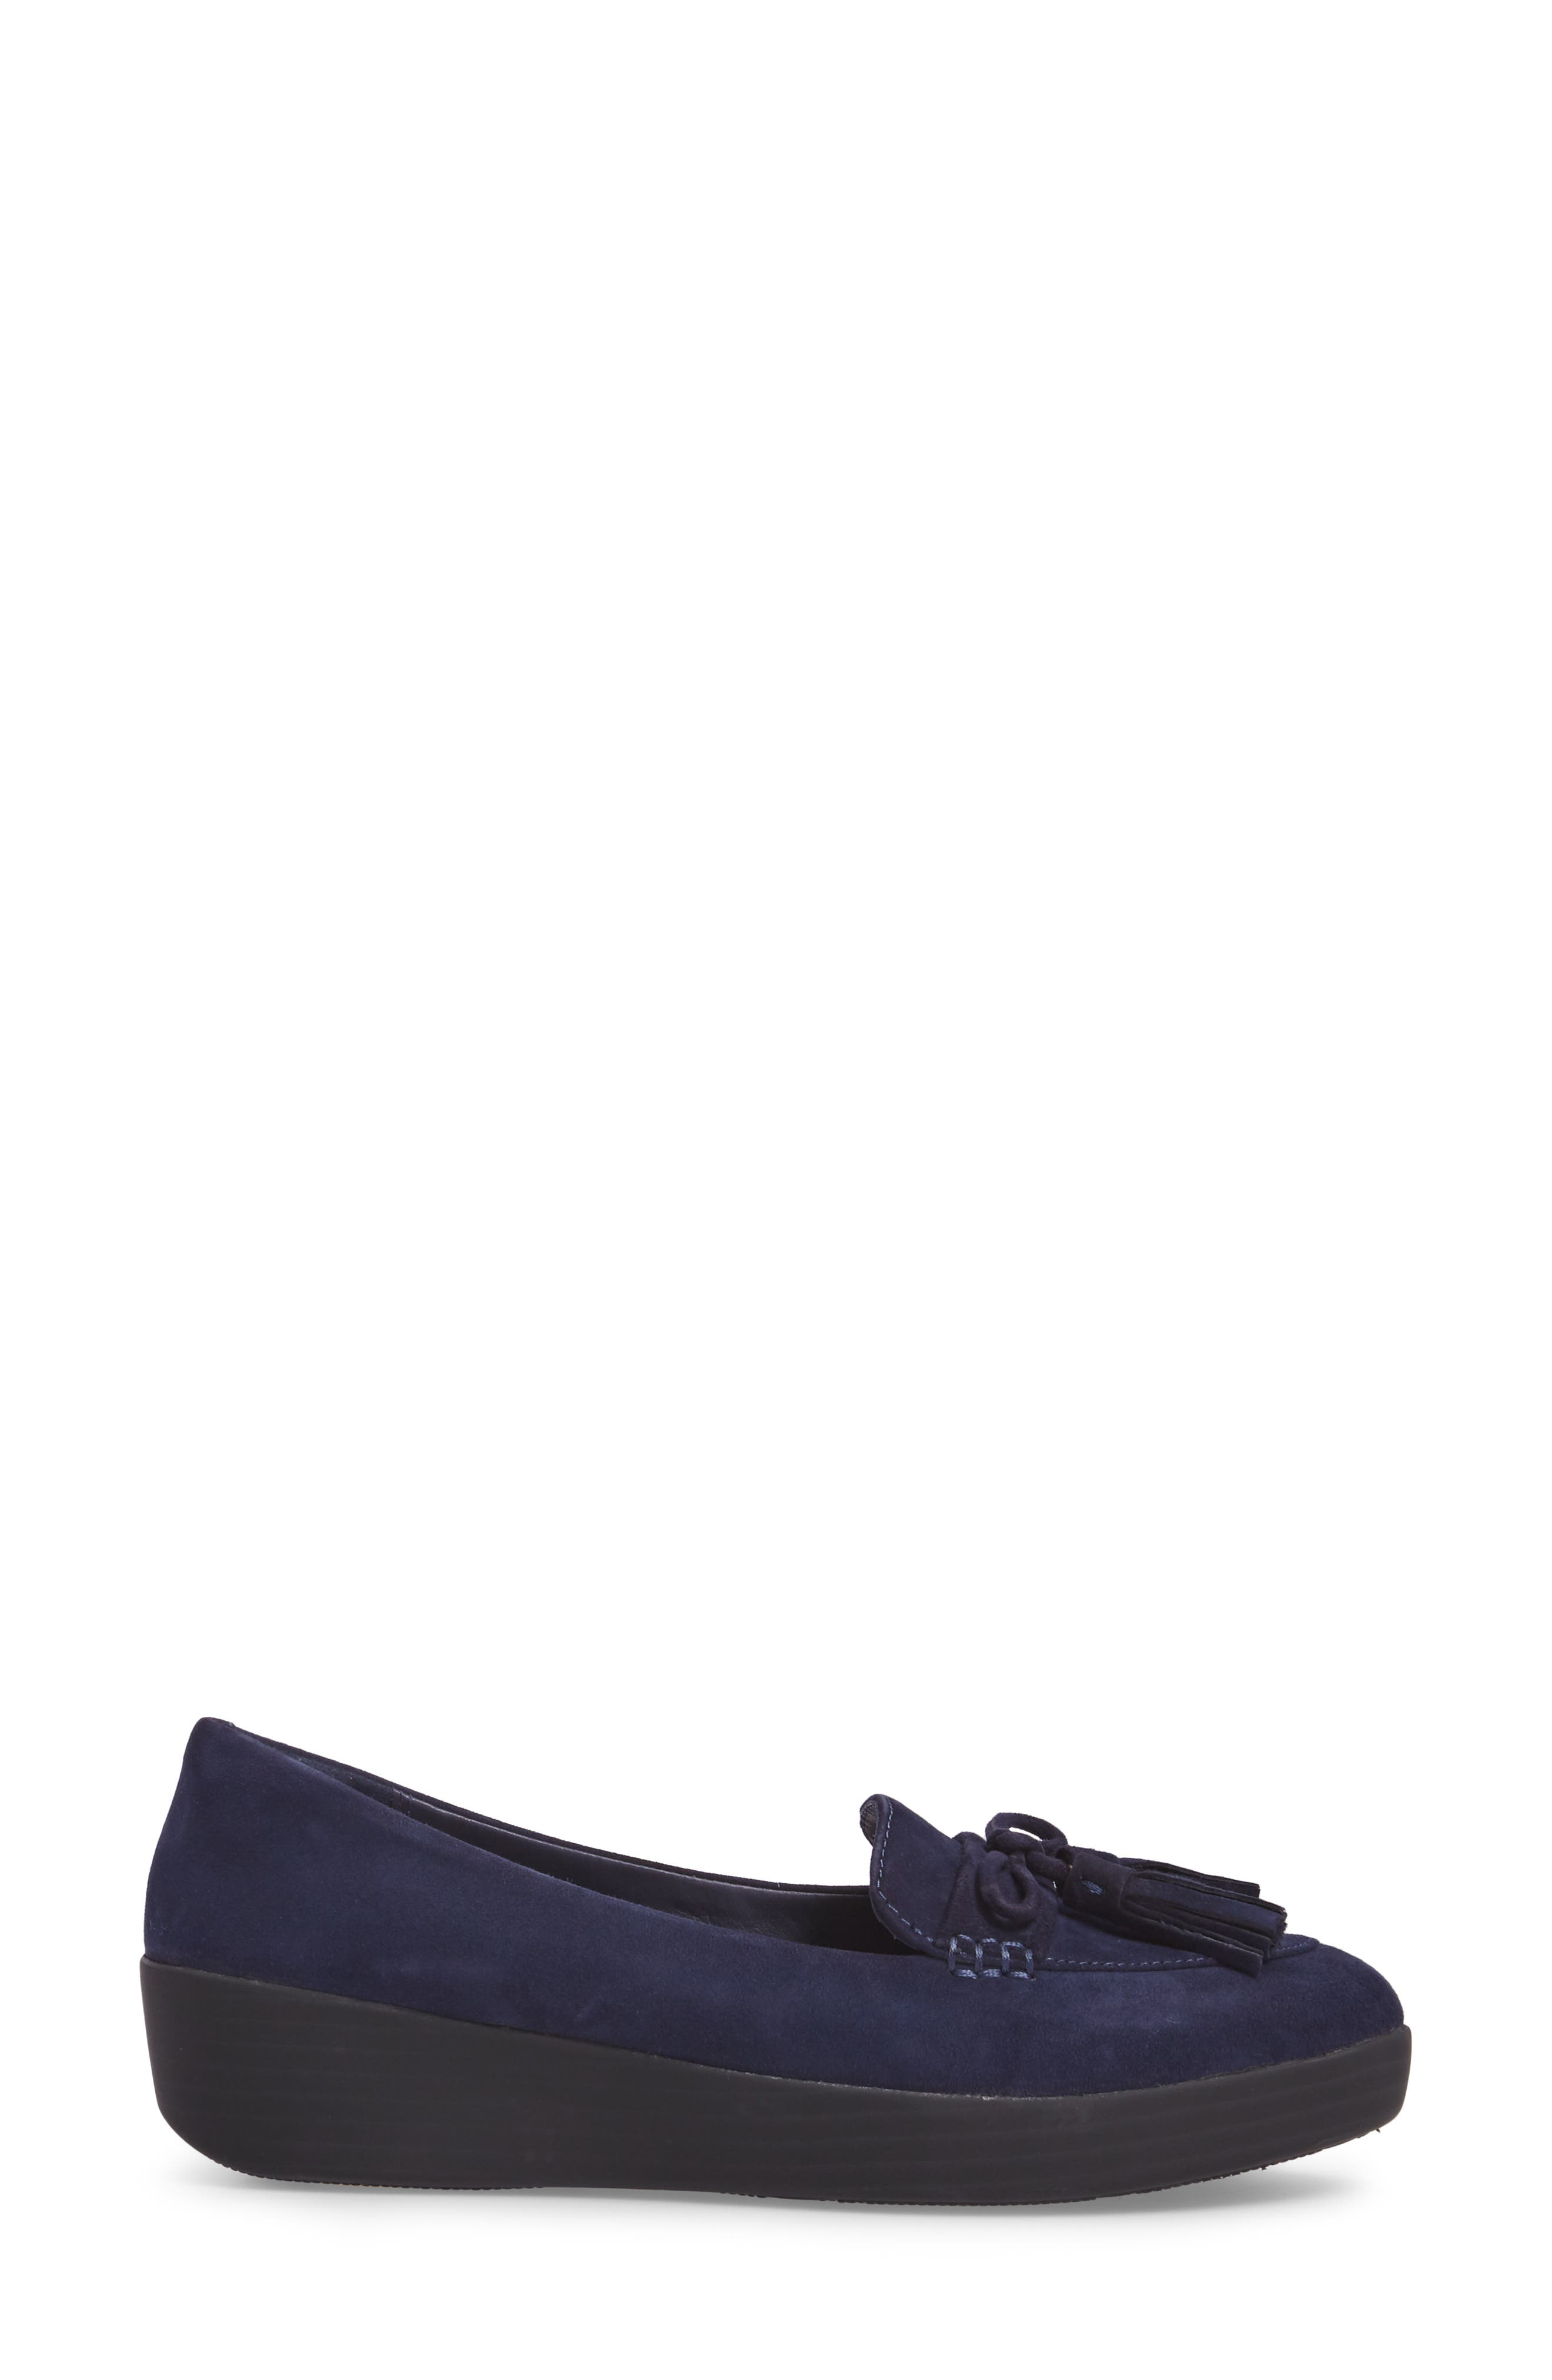 Tassel Bow Sneakerloafer<sup>™</sup> Water Repellent Flat,                             Alternate thumbnail 11, color,